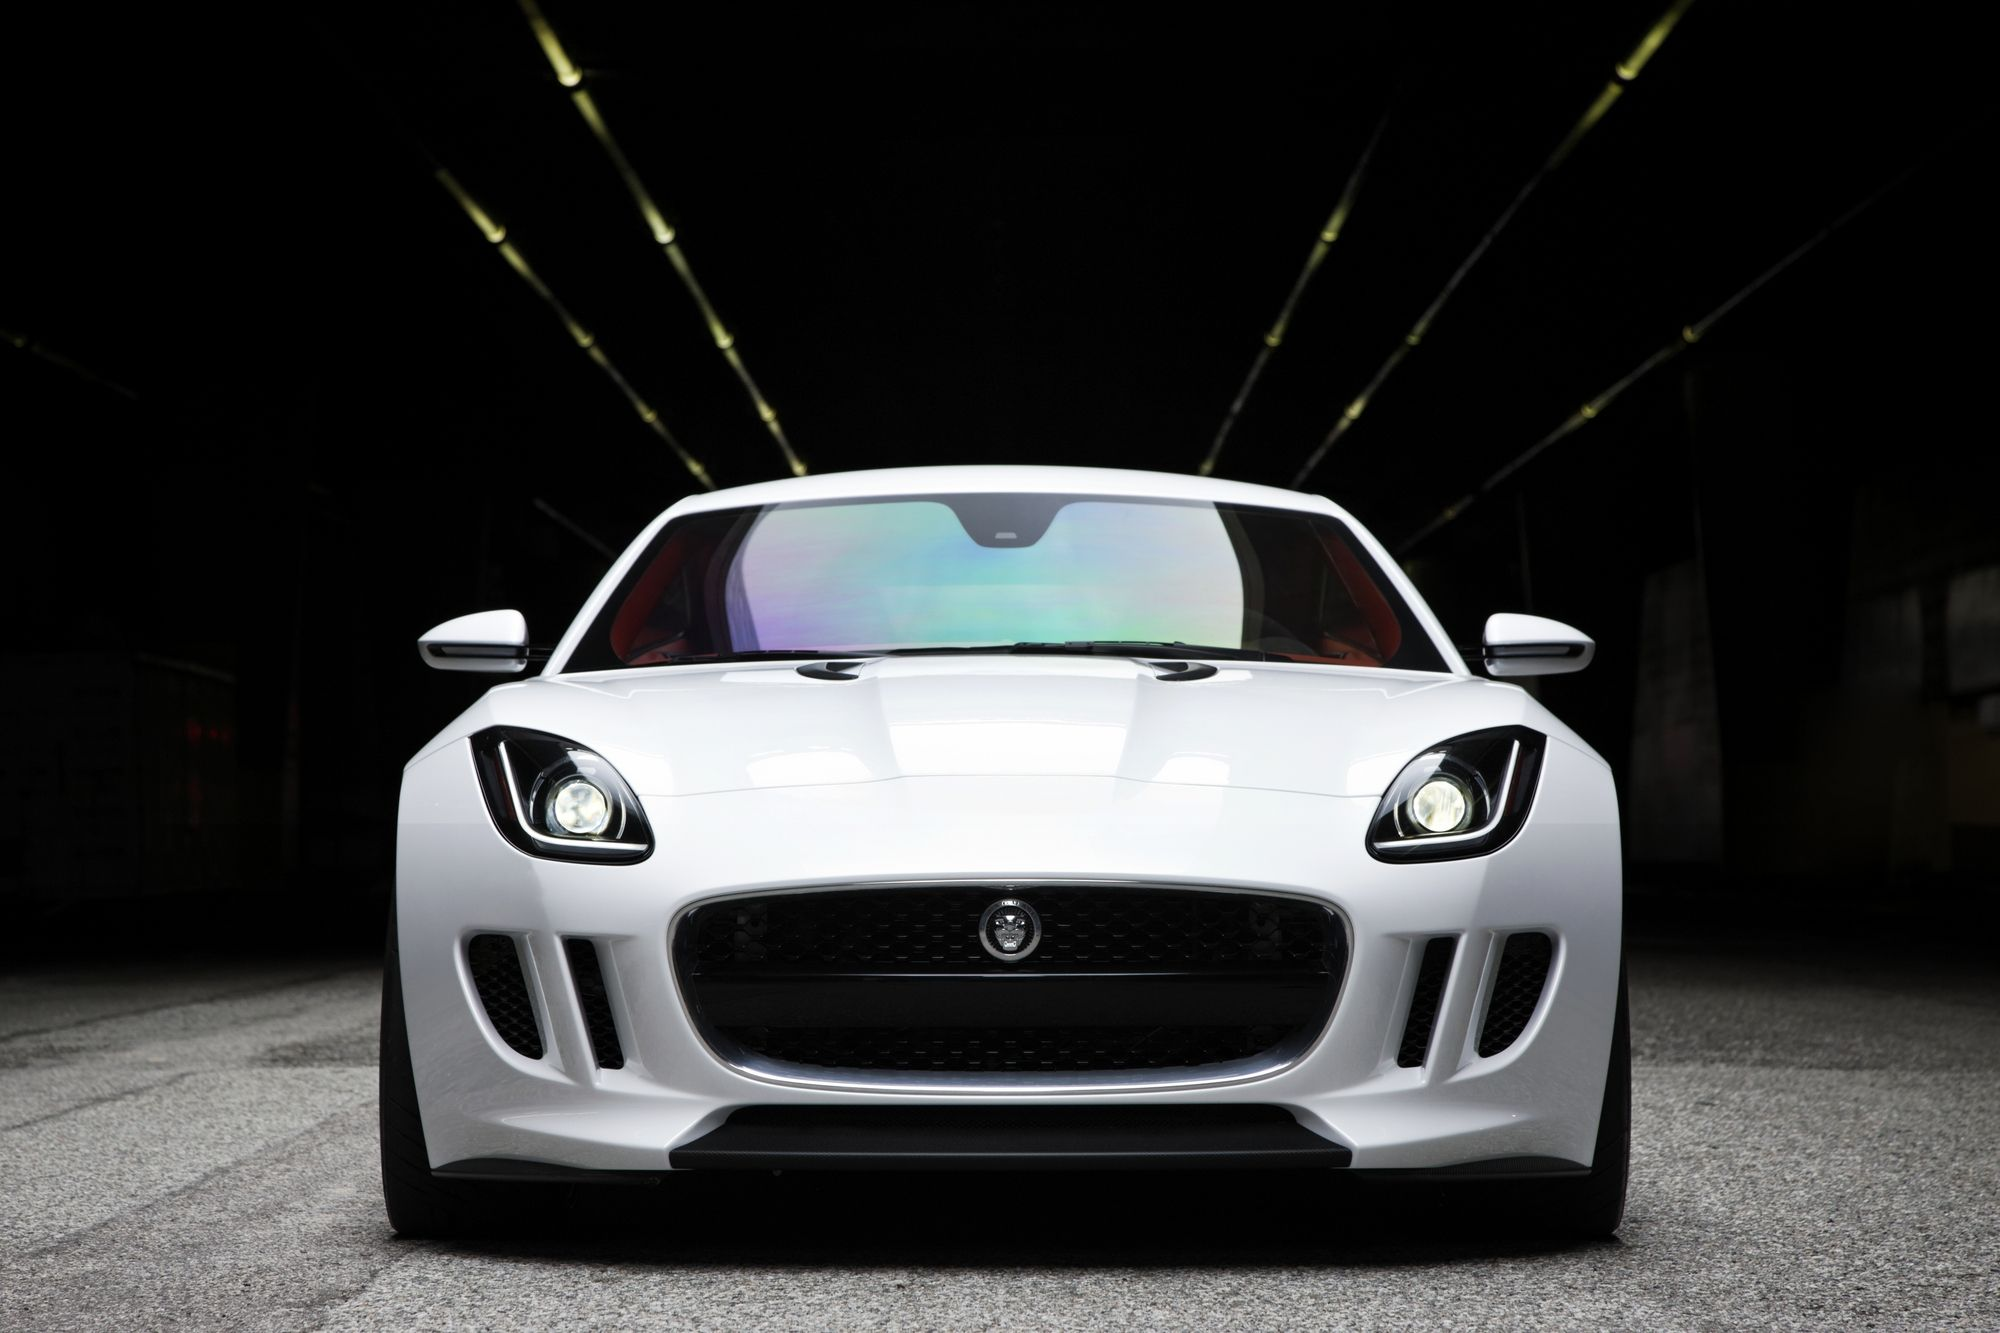 Concept car magazine cool car wallpapers - Jaguar F Type White Wallpaper Hd Super Bowljaguar Carsjaguar